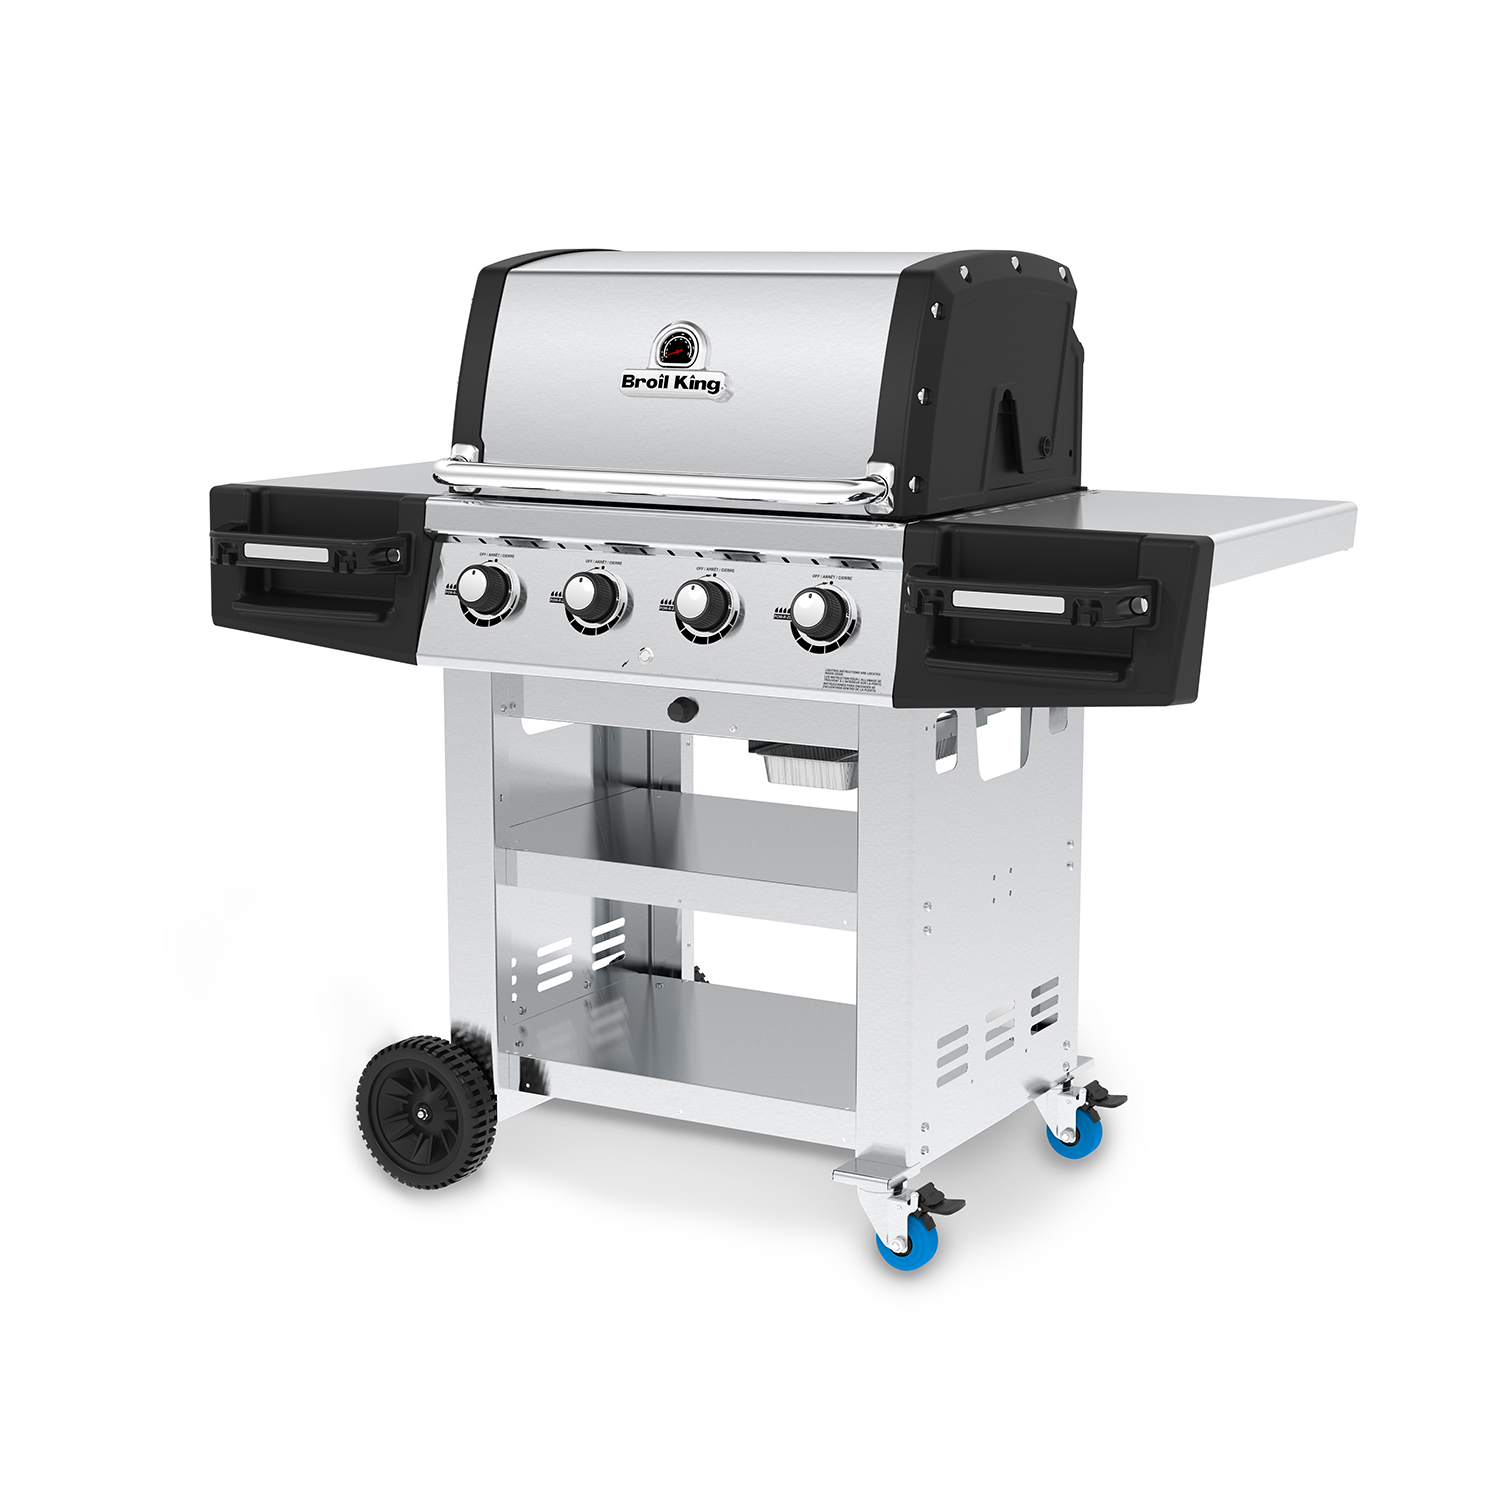 Broil Gasgrill Broil King Regal S420 Commercial Gas Grill